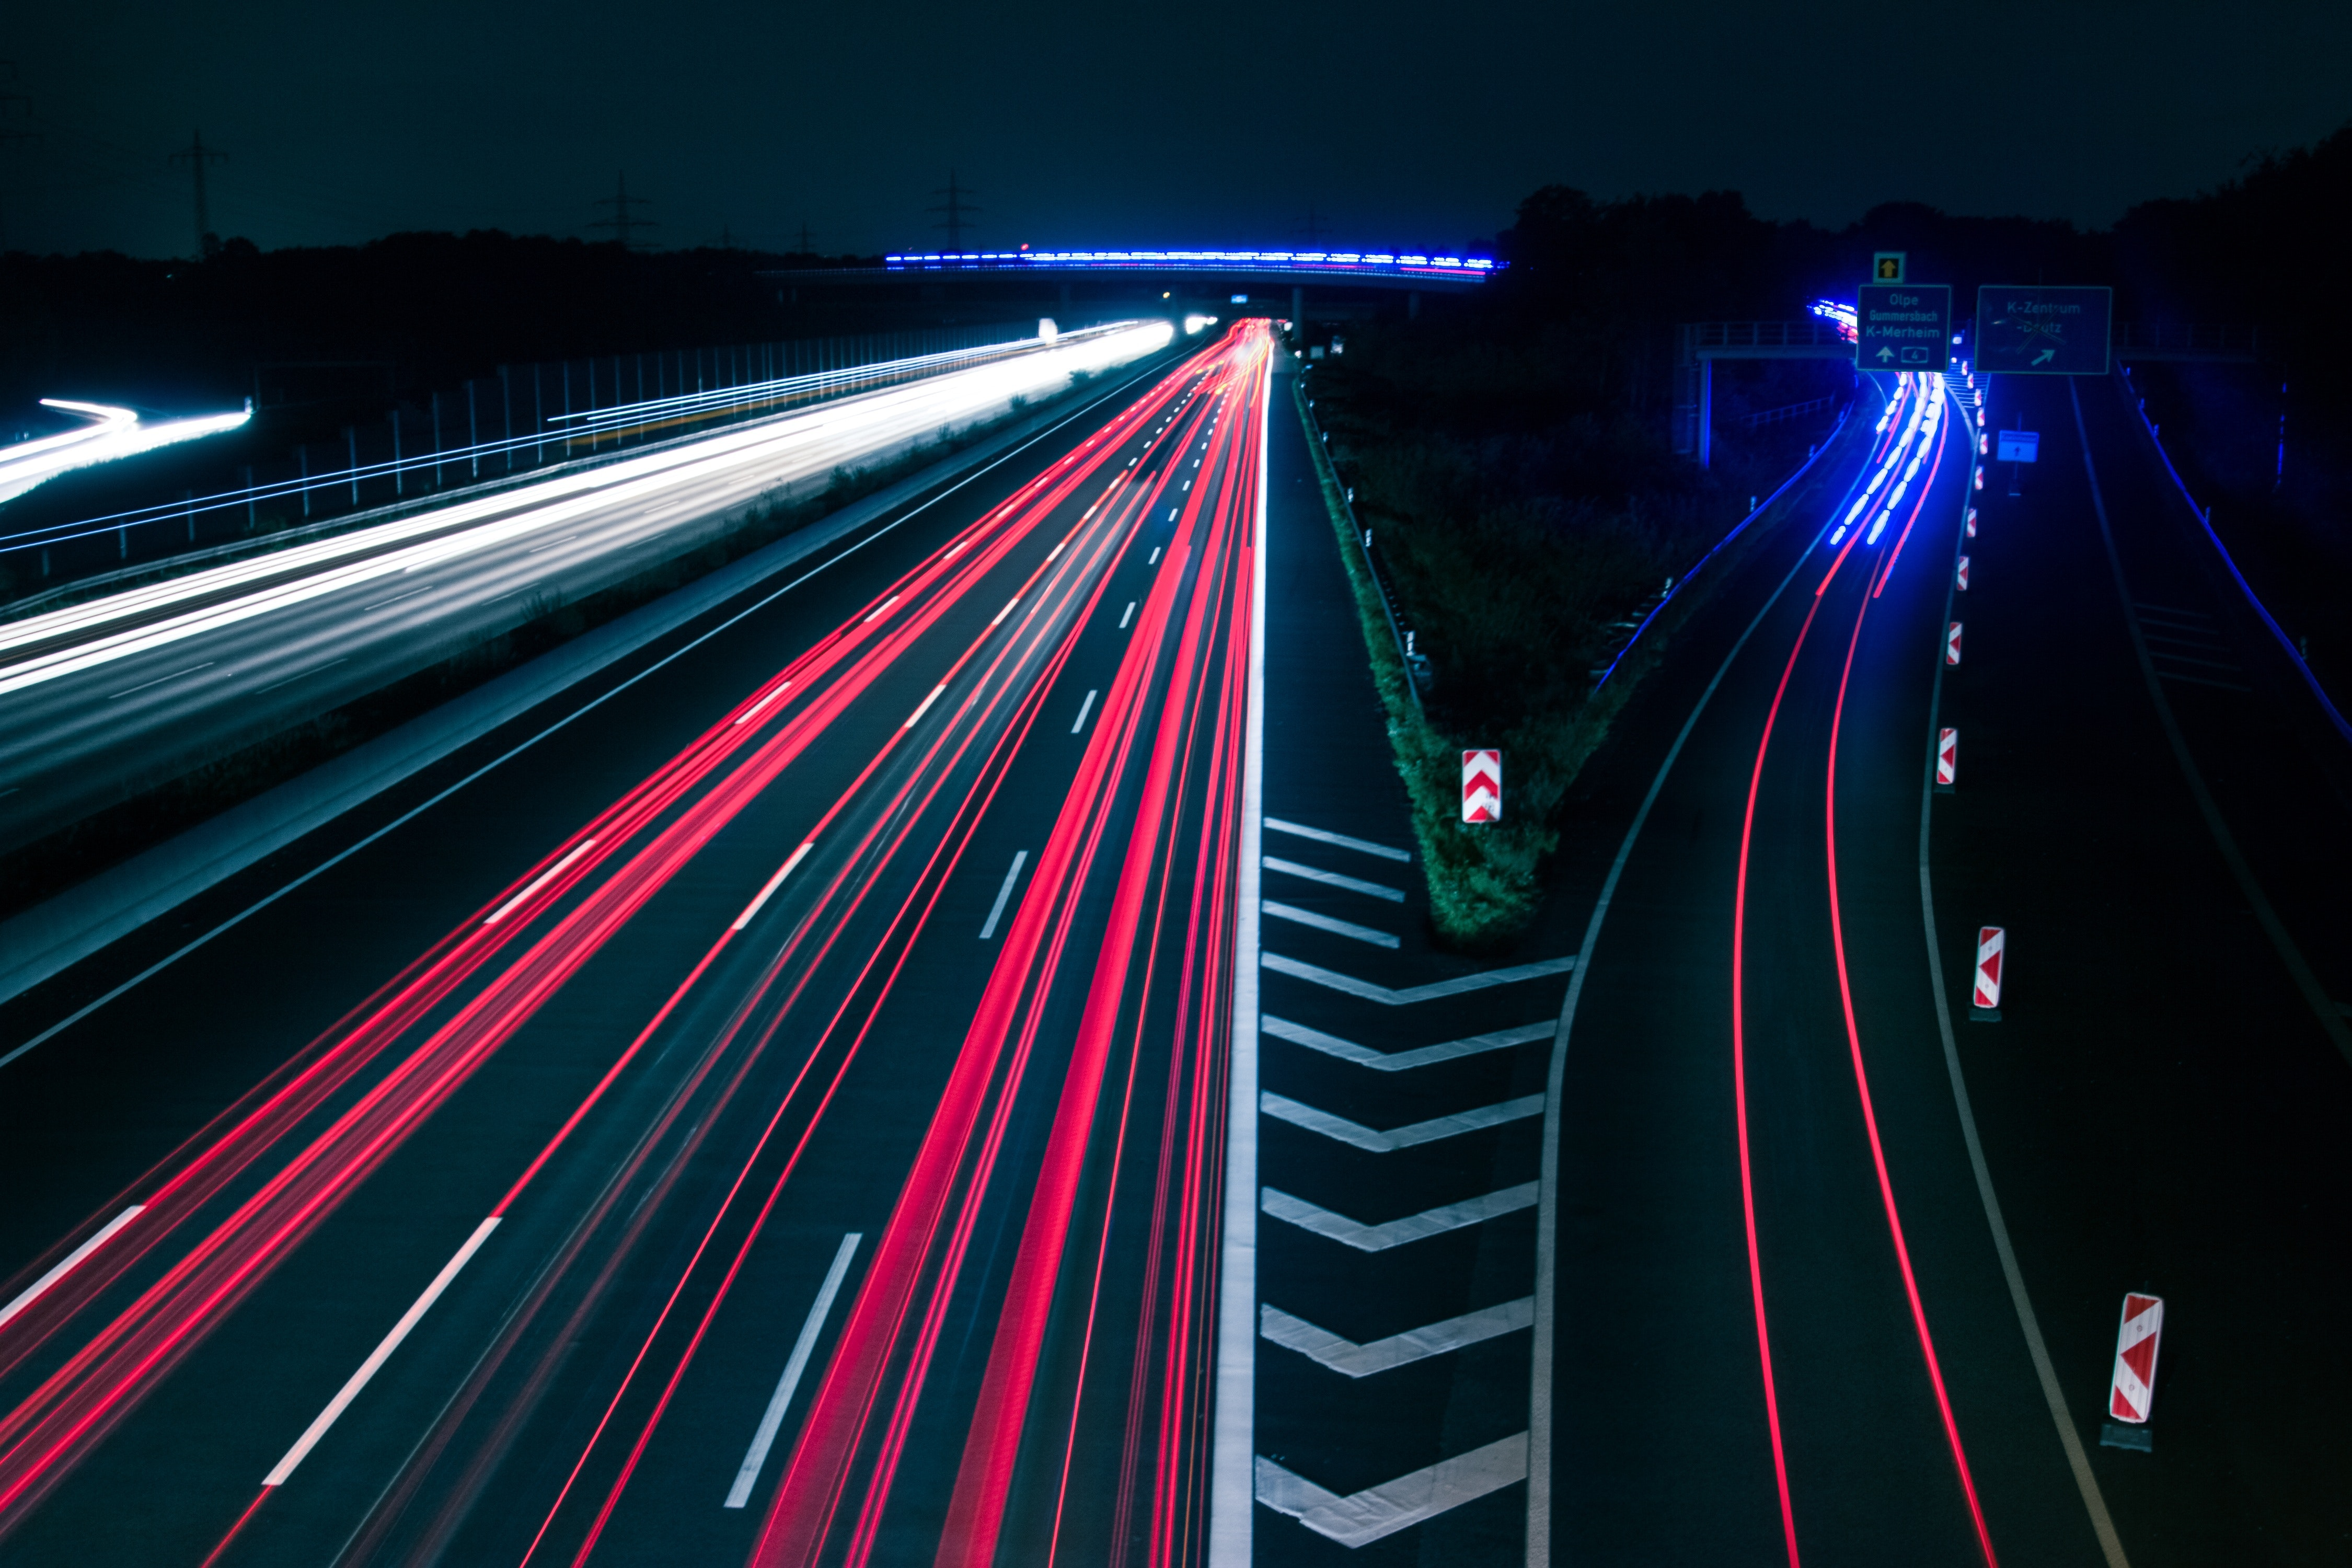 Light trails on road at night photo